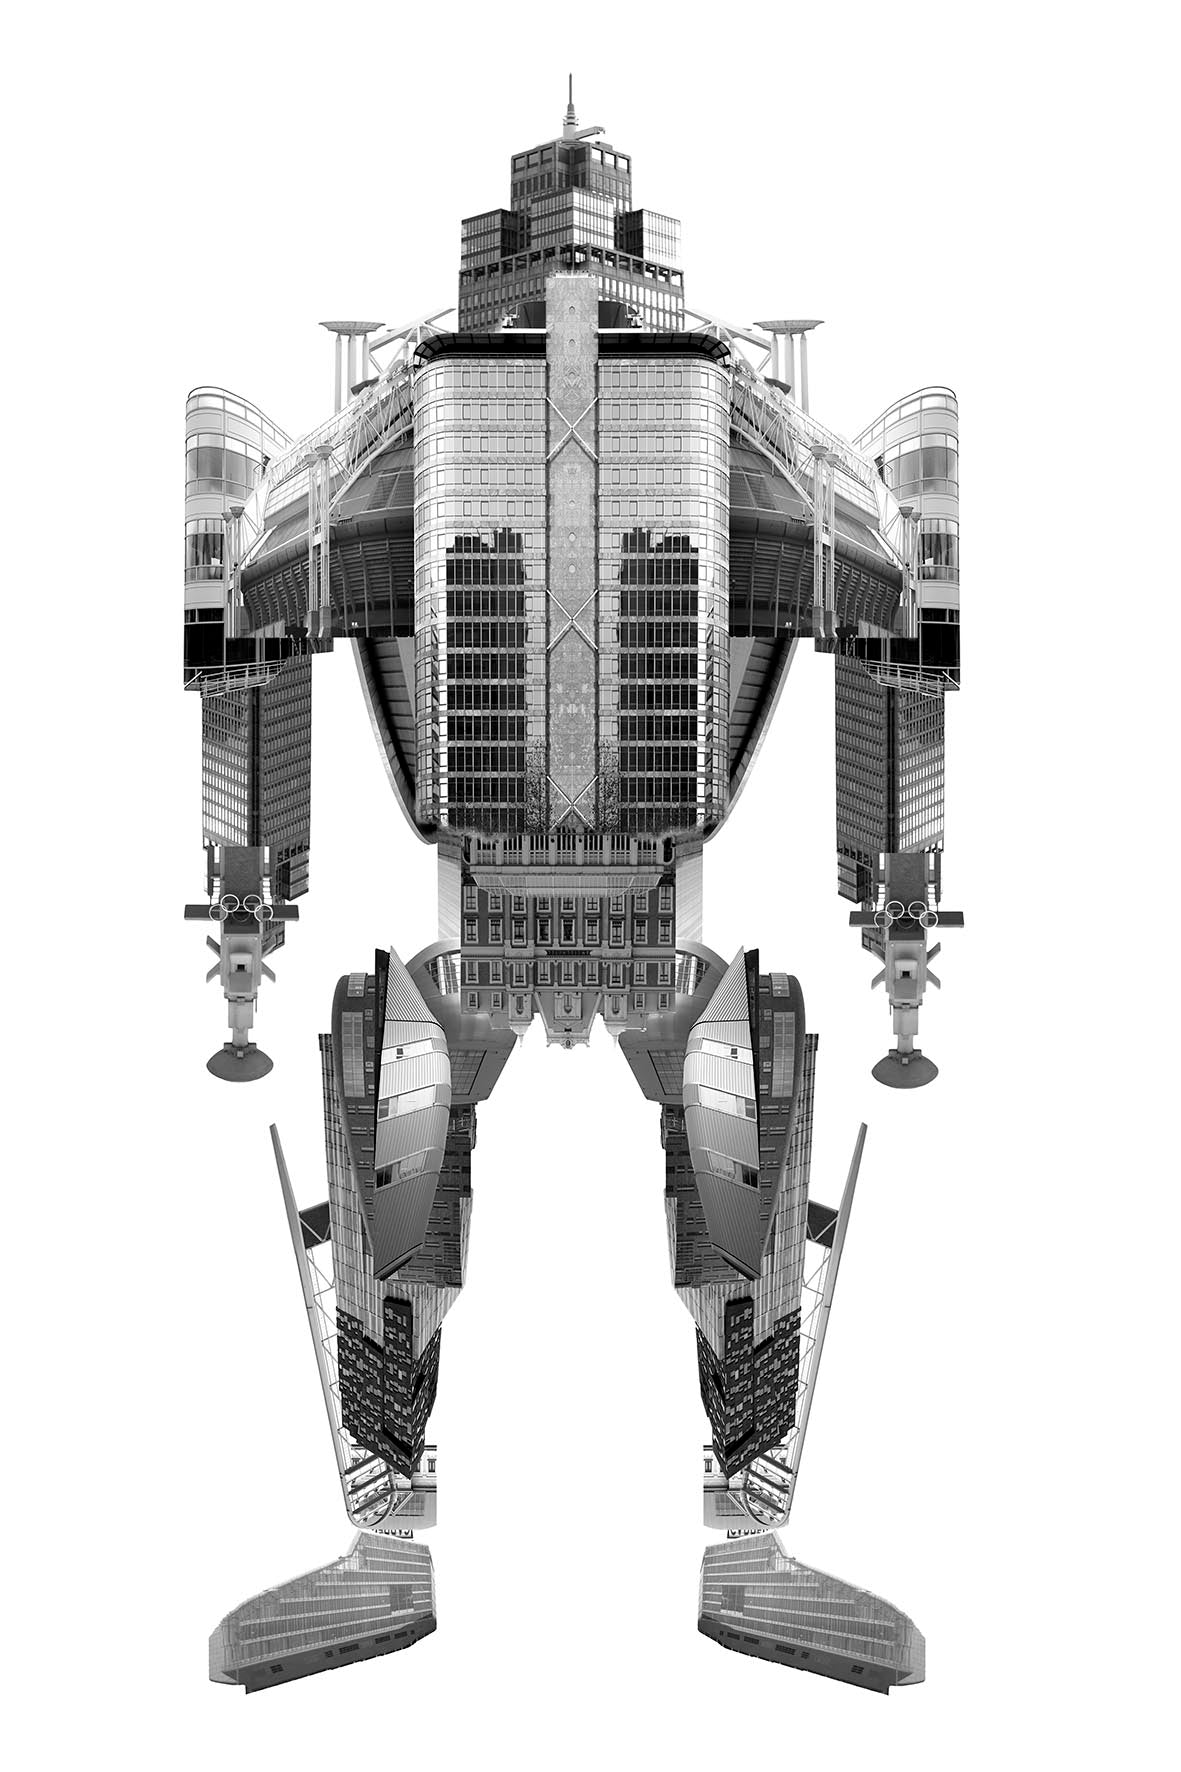 City Robot Amsterdam | Special edition Art Print on Aluminium